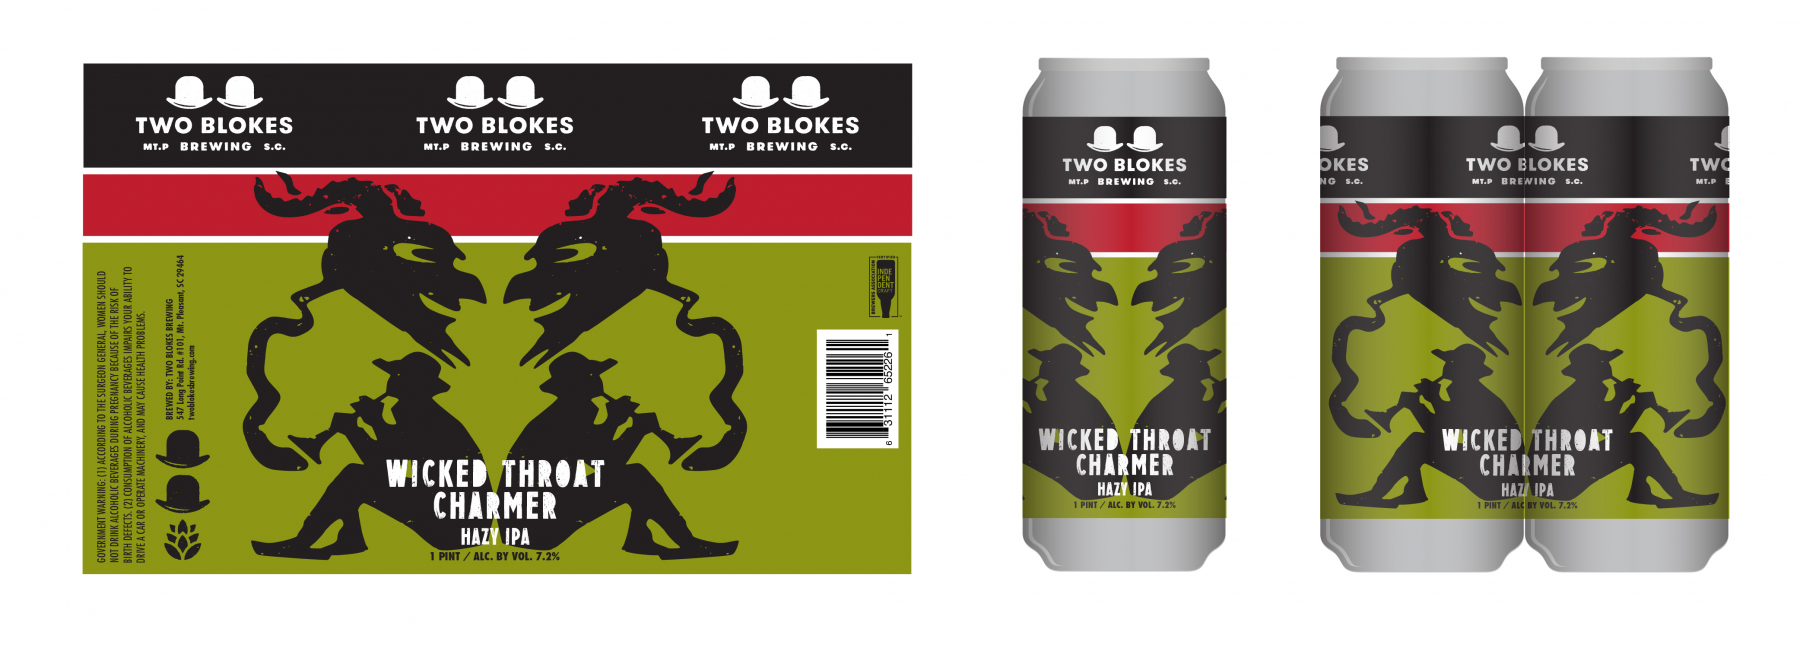 Two Blokes Brewing Co.